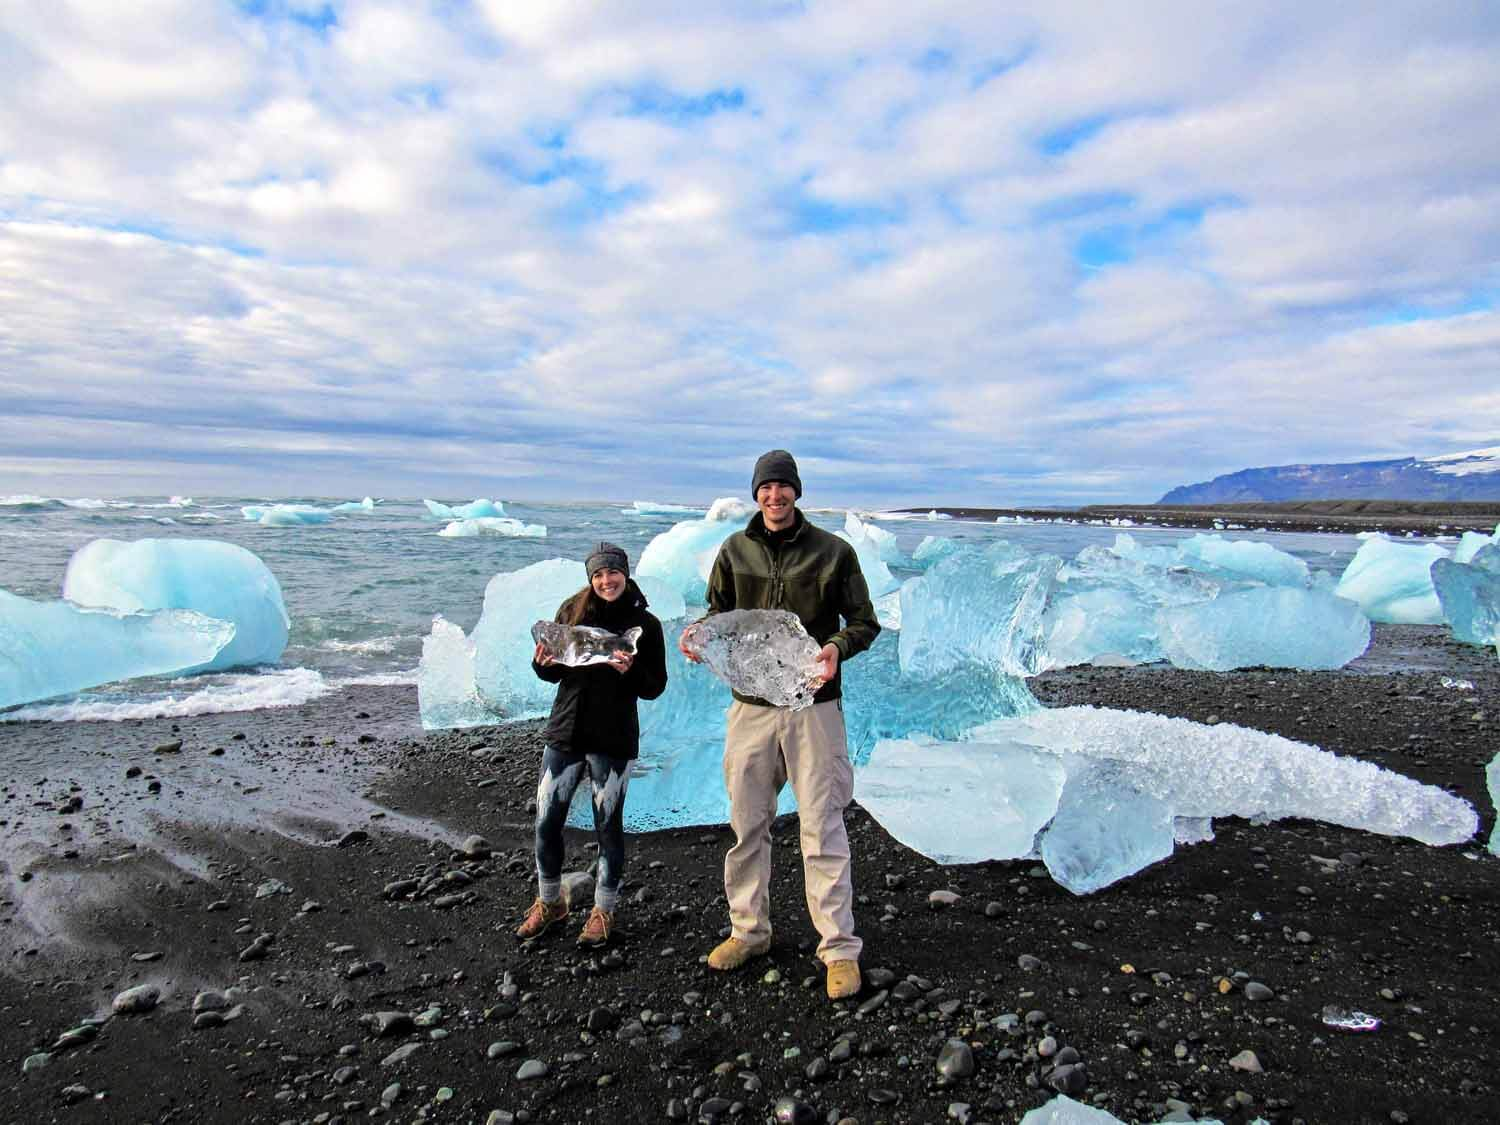 iceland-jokusarlon-ice-beach-team.jpg